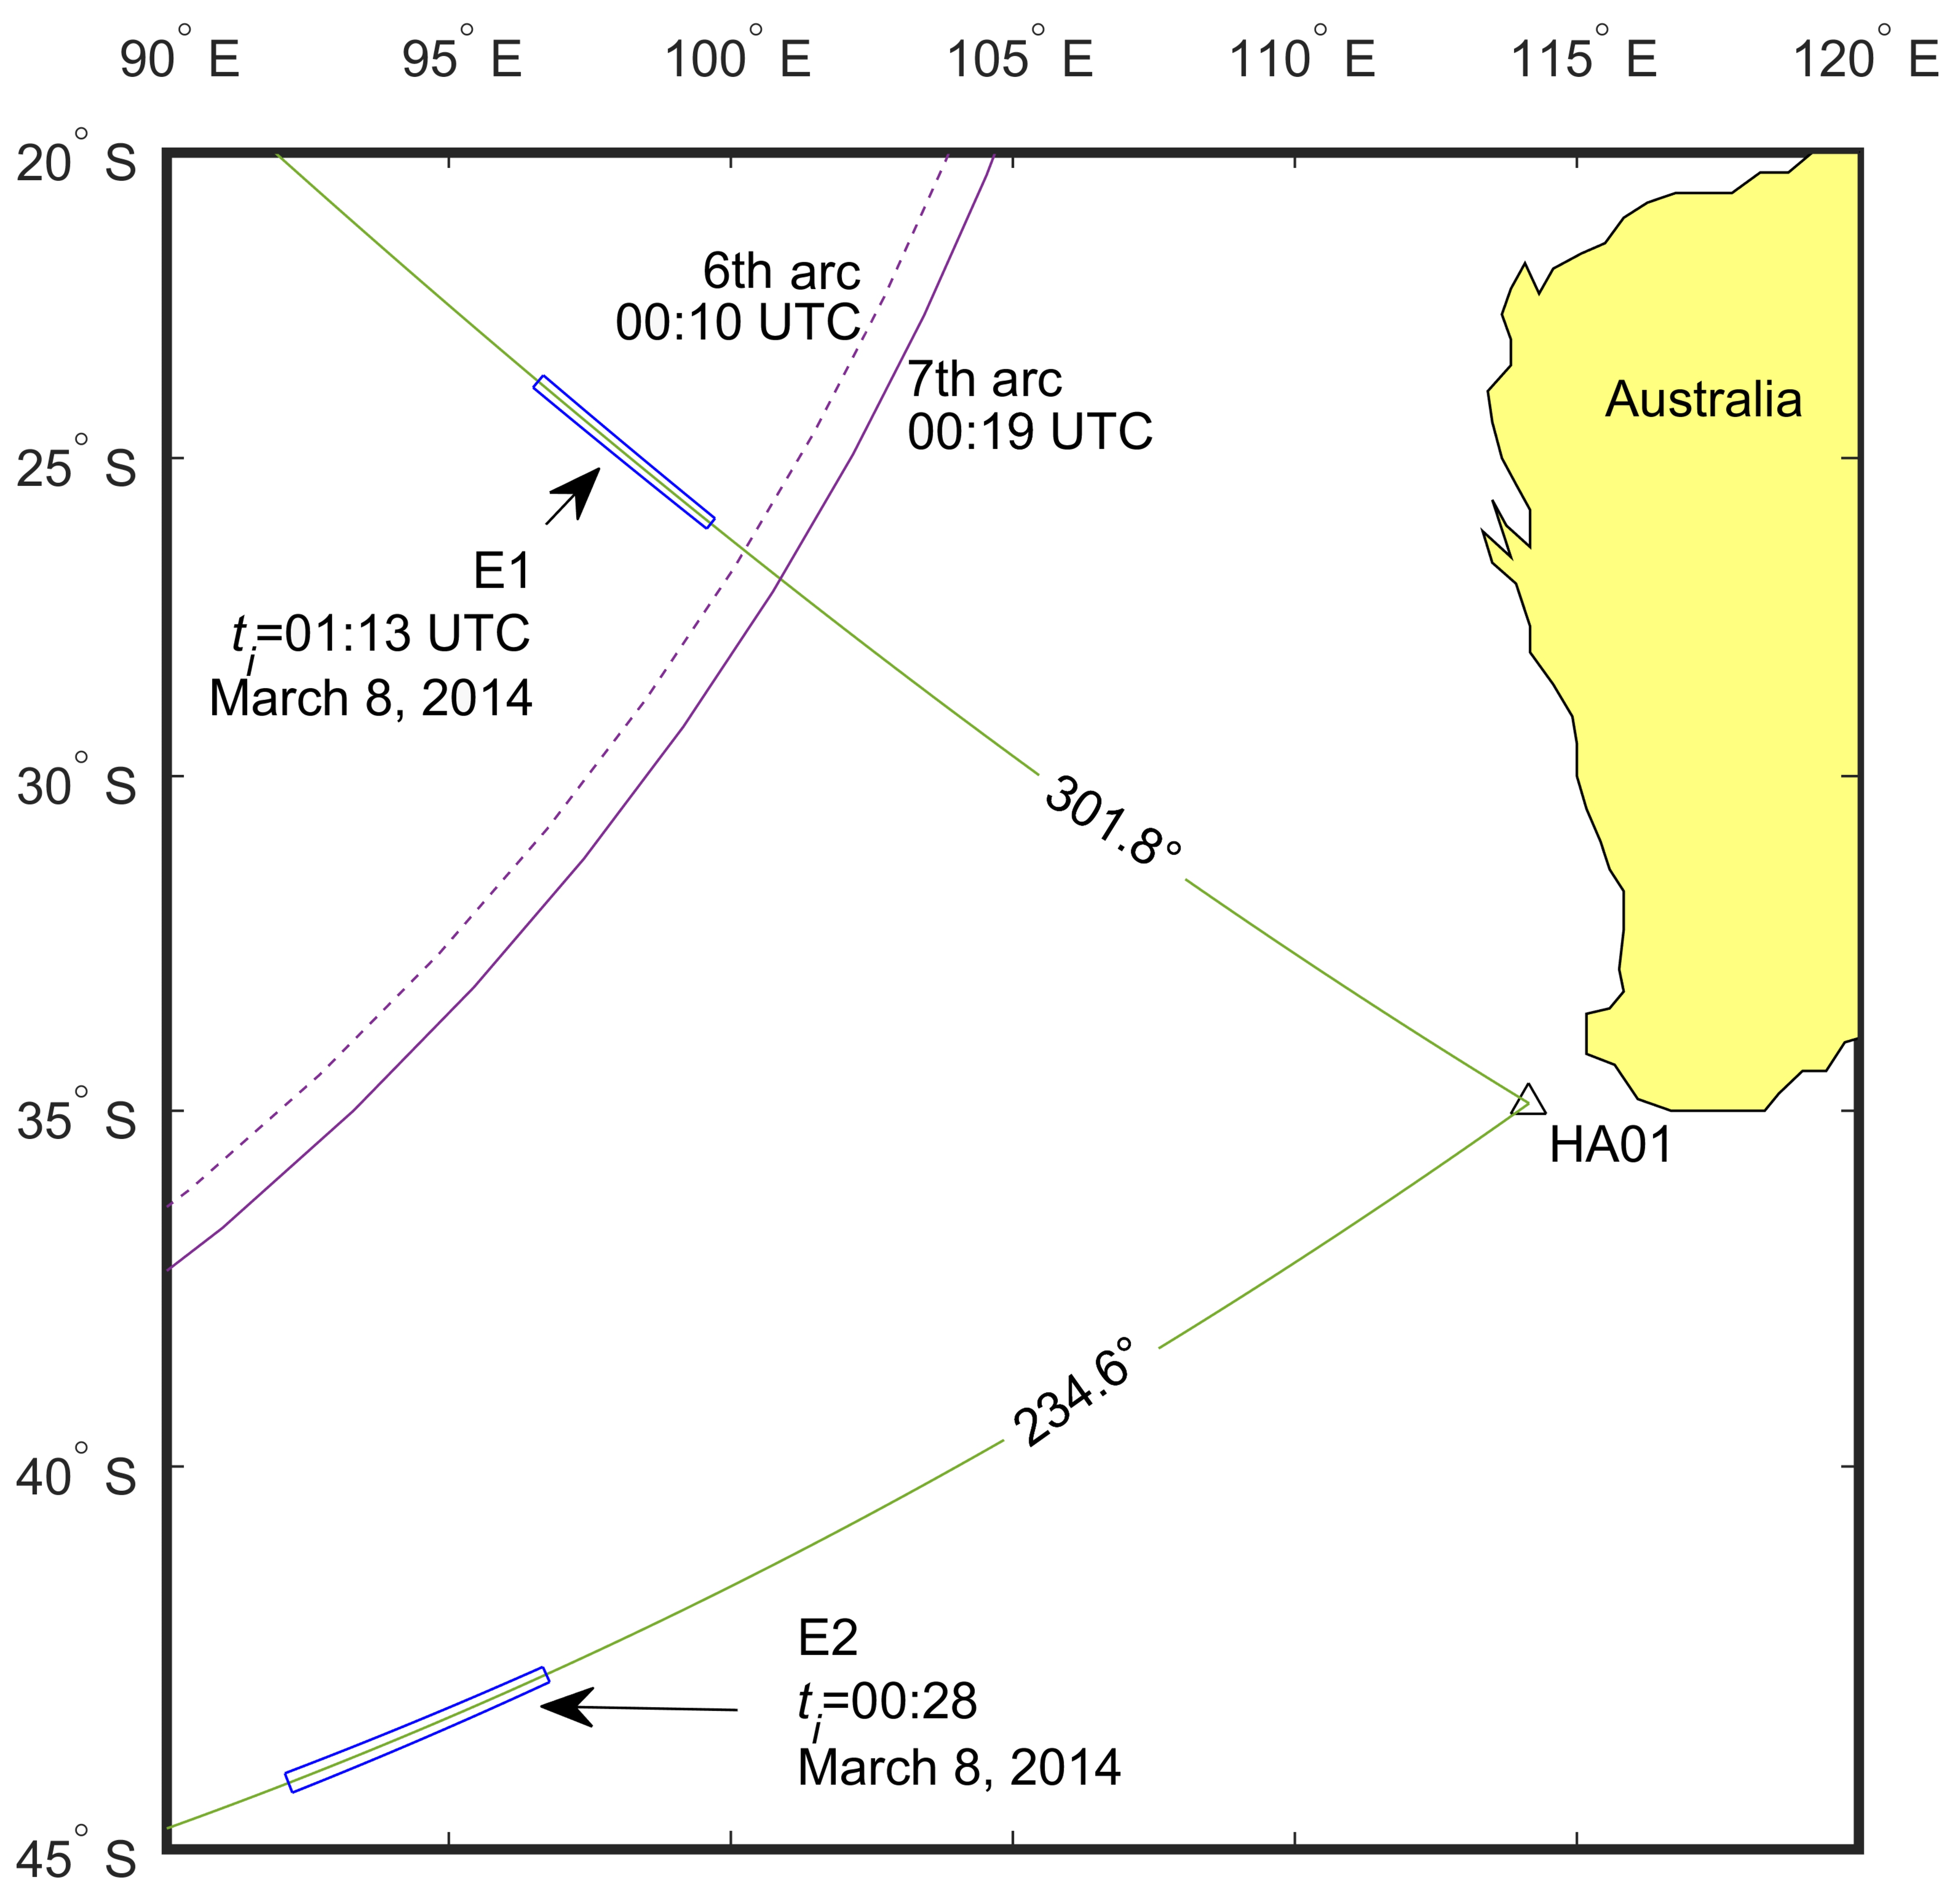 Malaysian Airlines MH370 ricerca onde sonore mappa -2